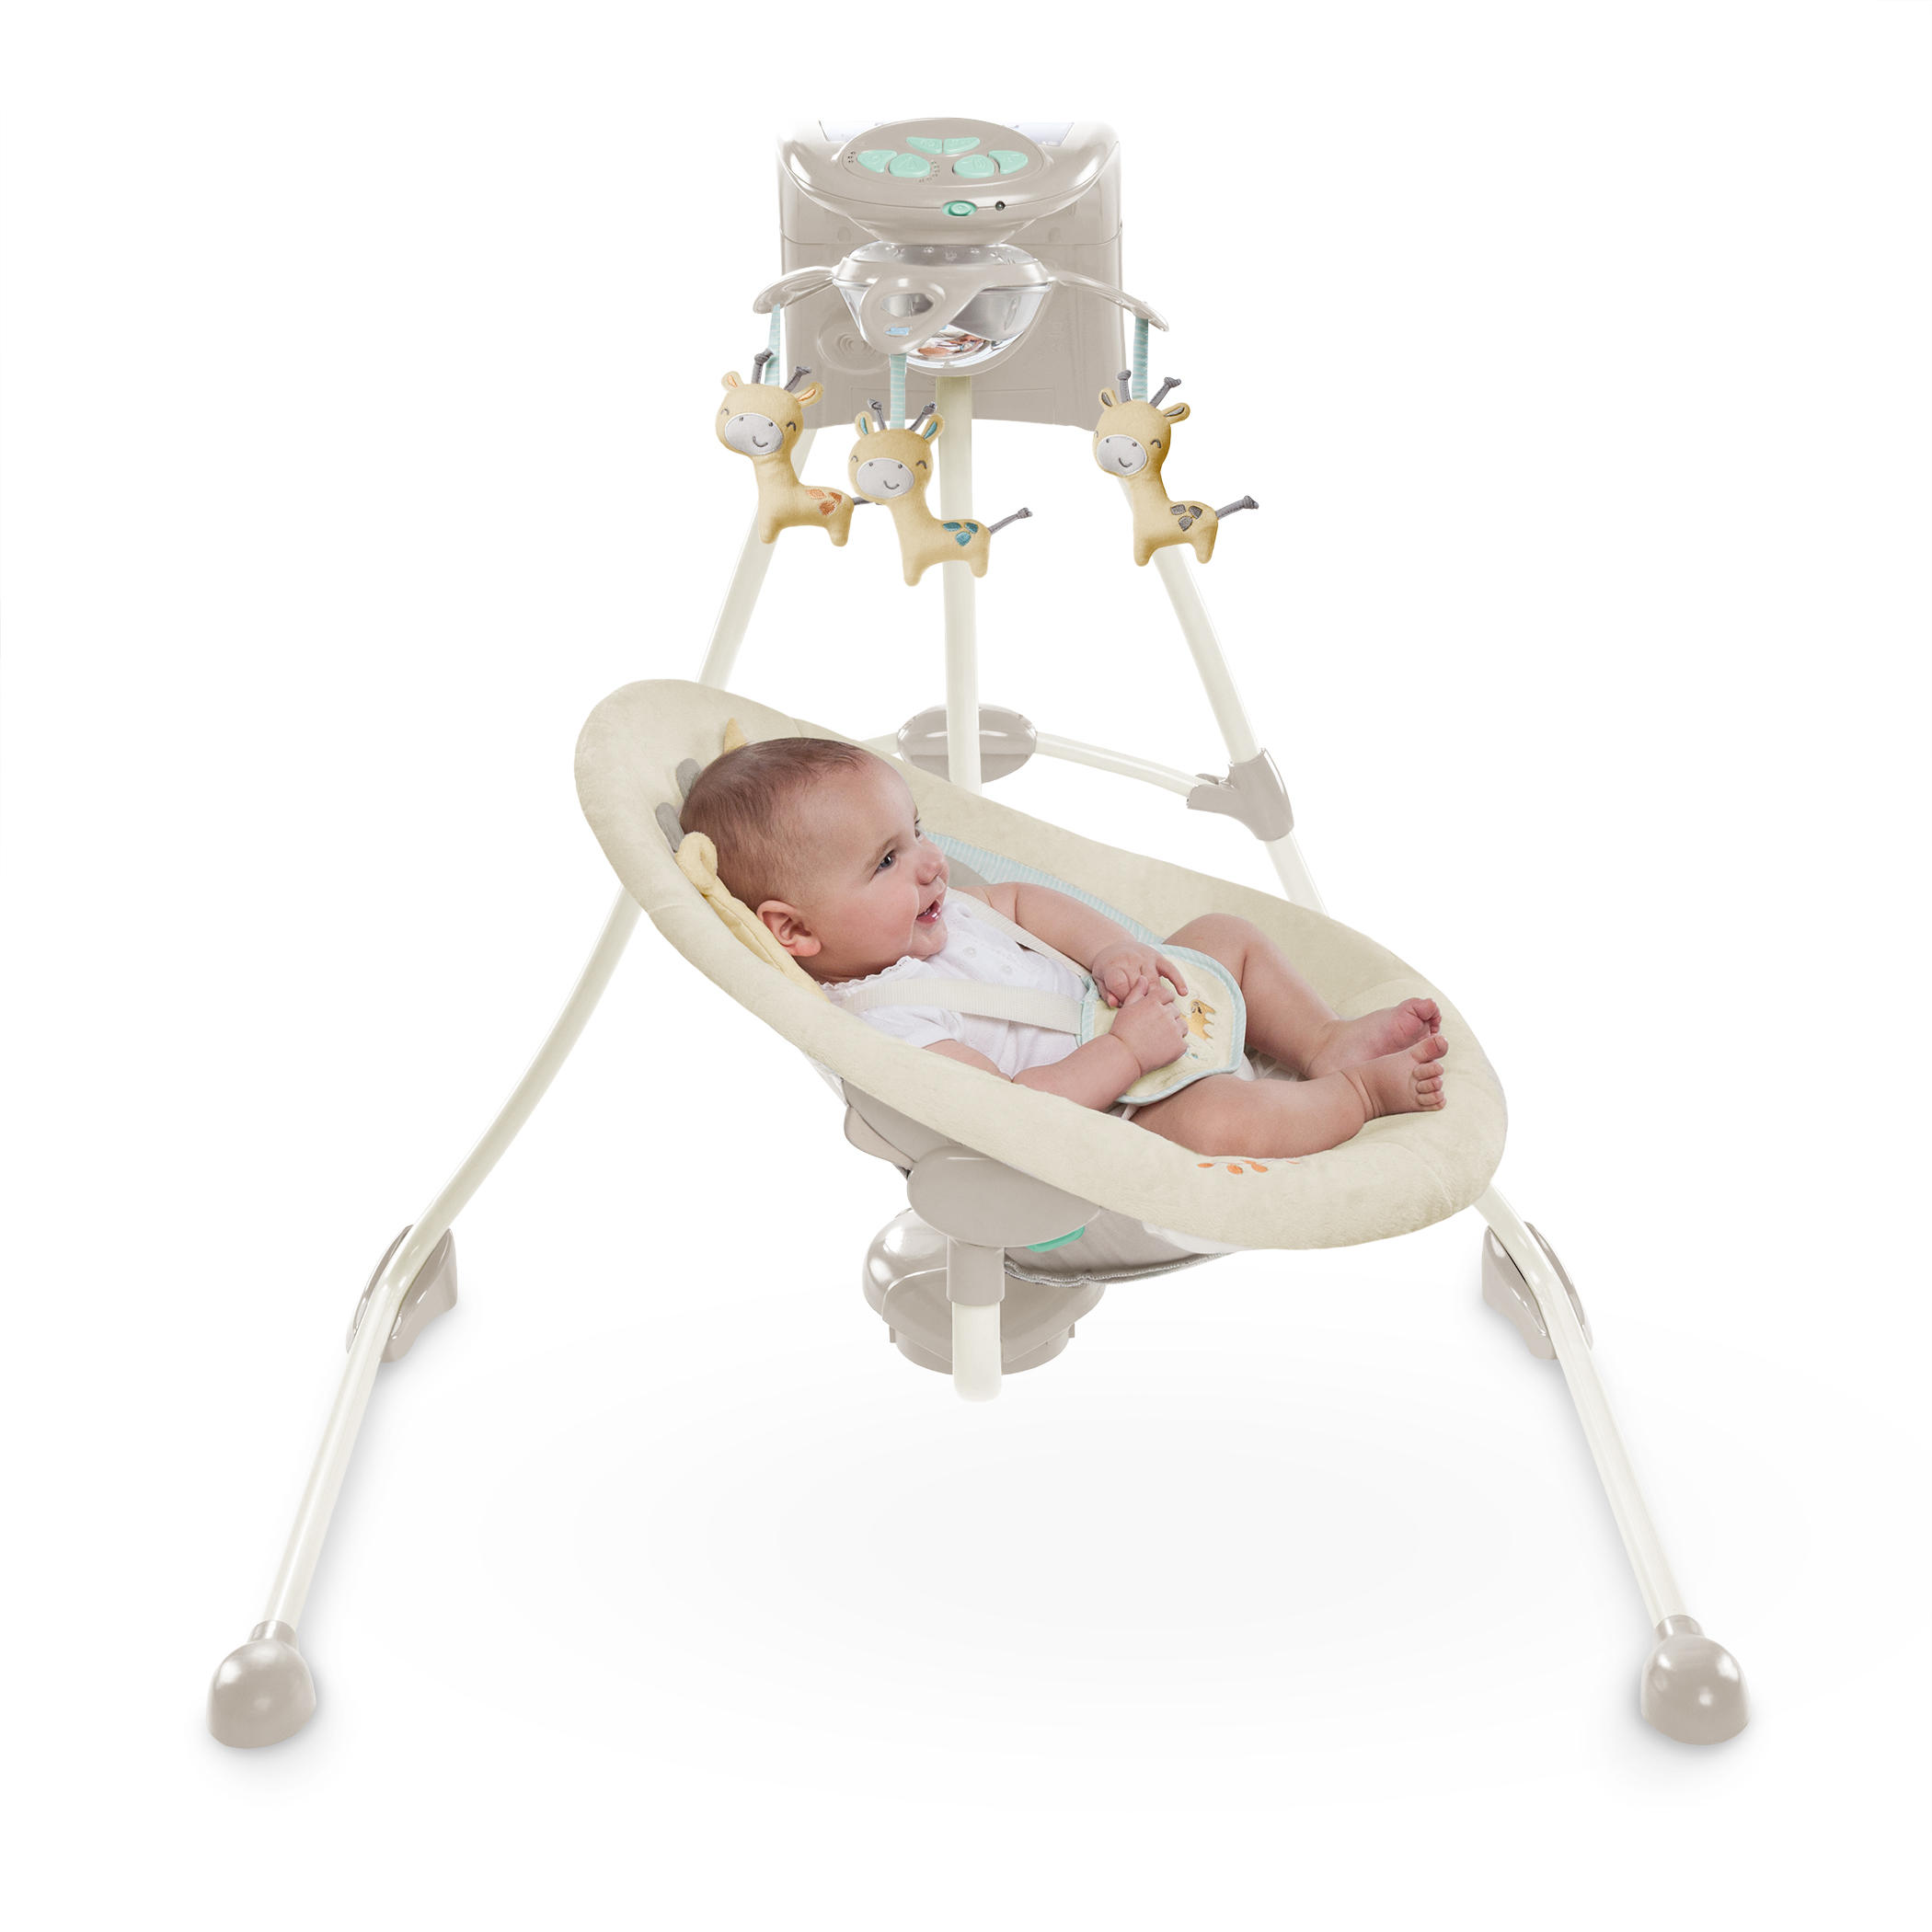 InLighten Cradling Swing™ - Cuddle Giraffe™